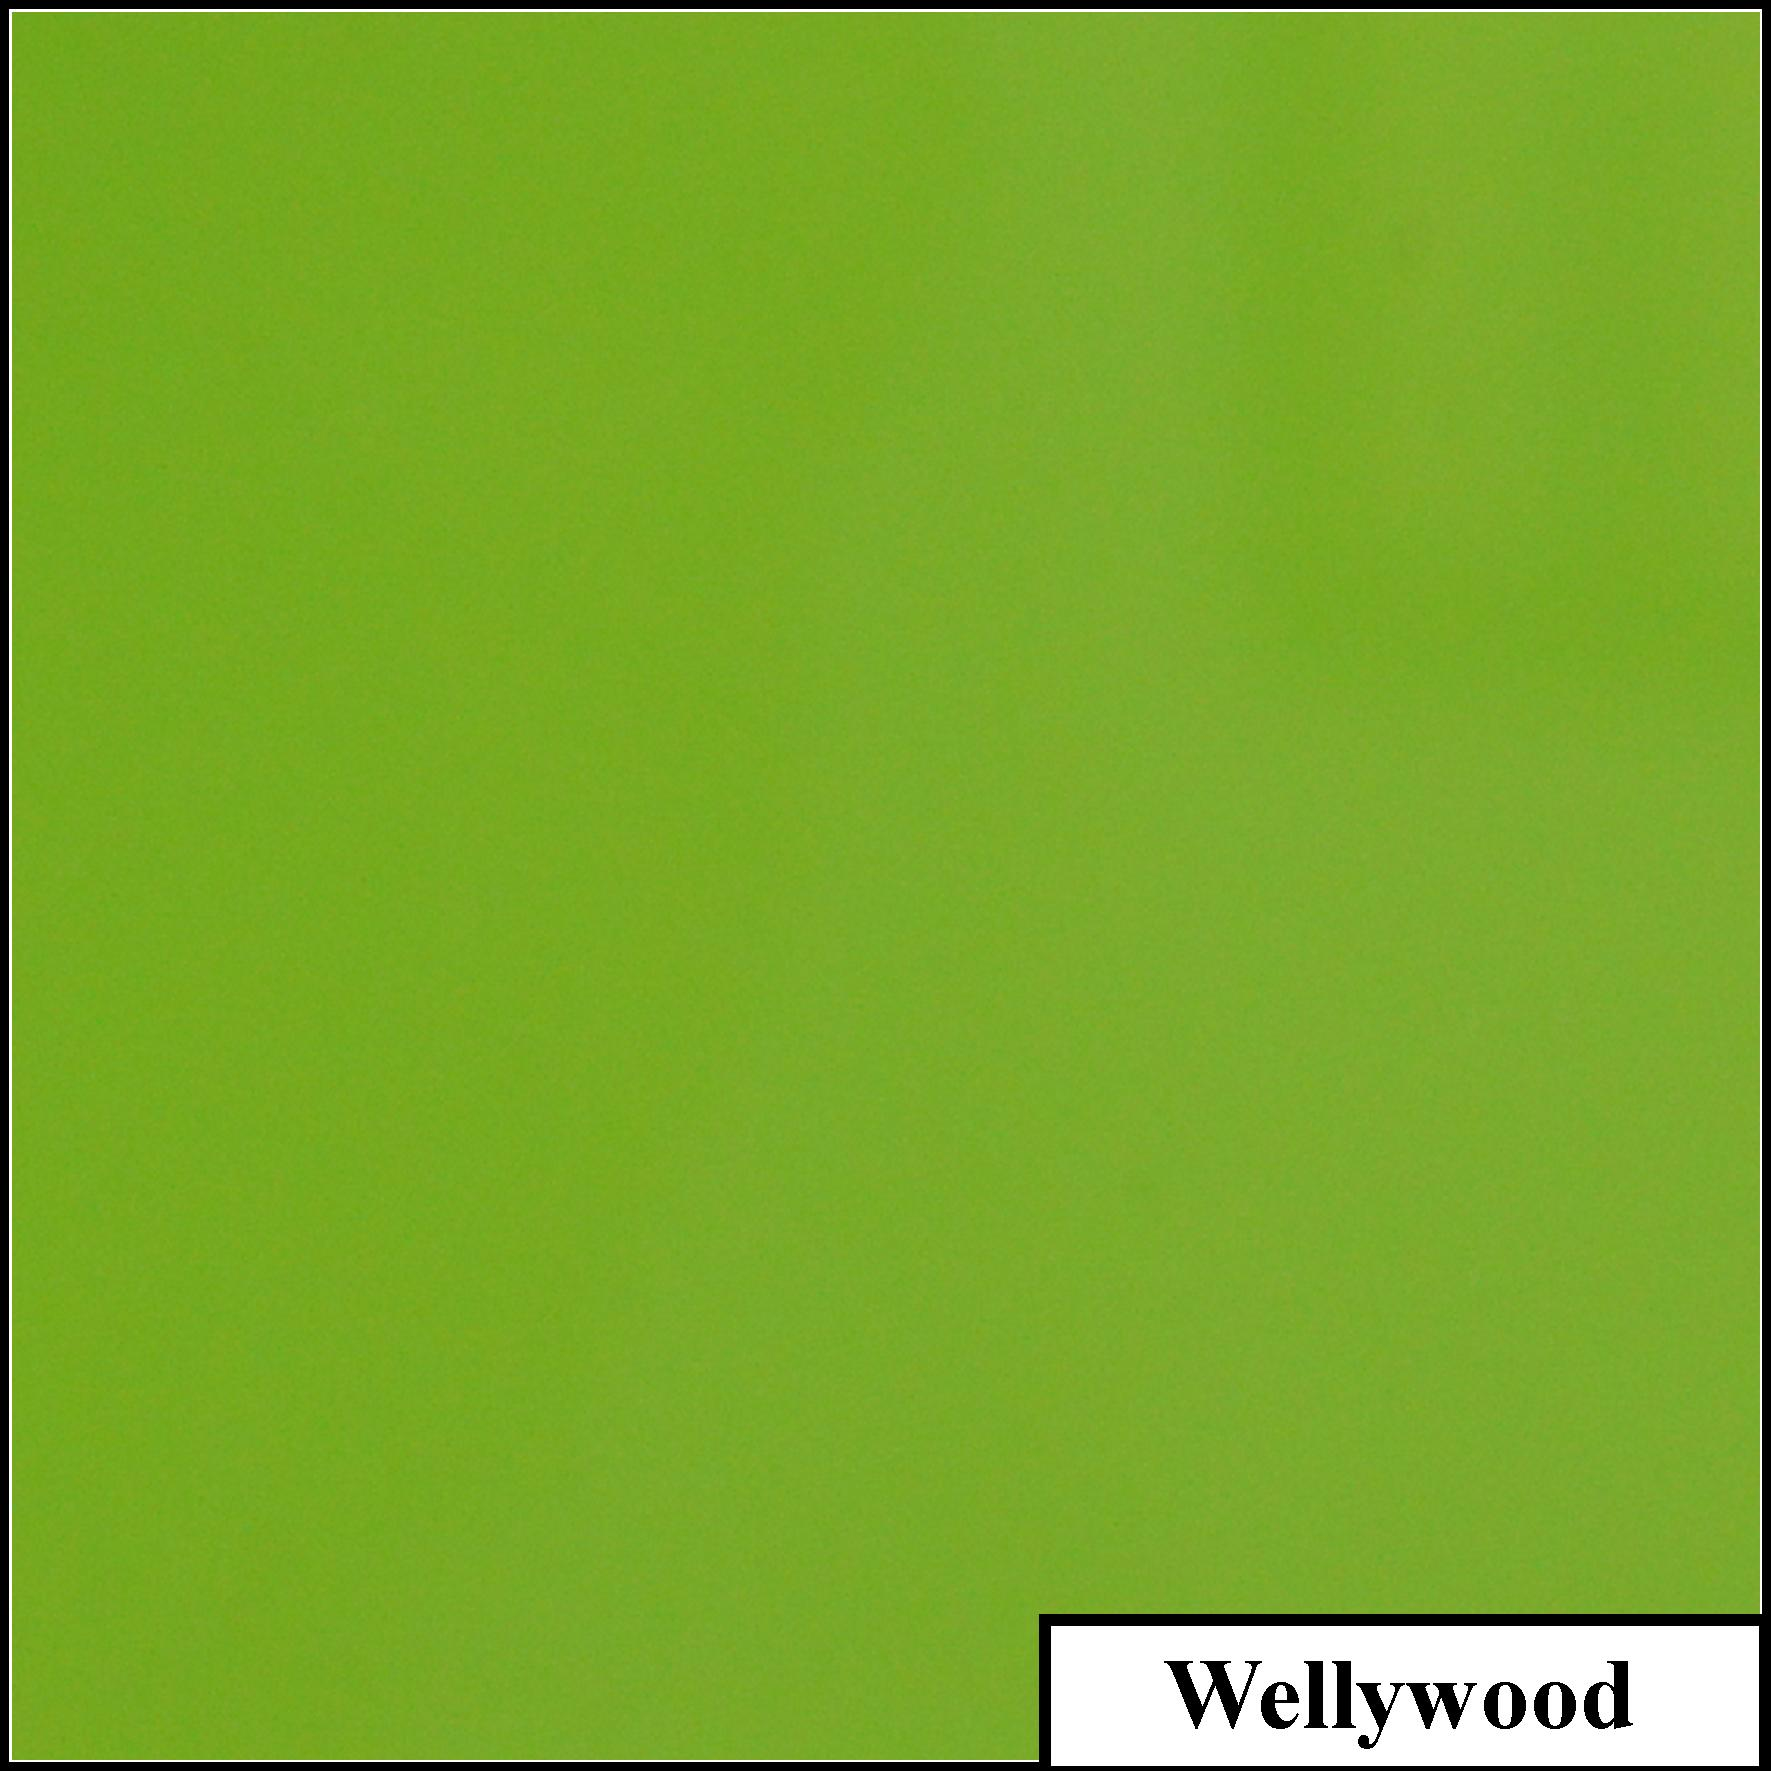 Wellywood.jpg